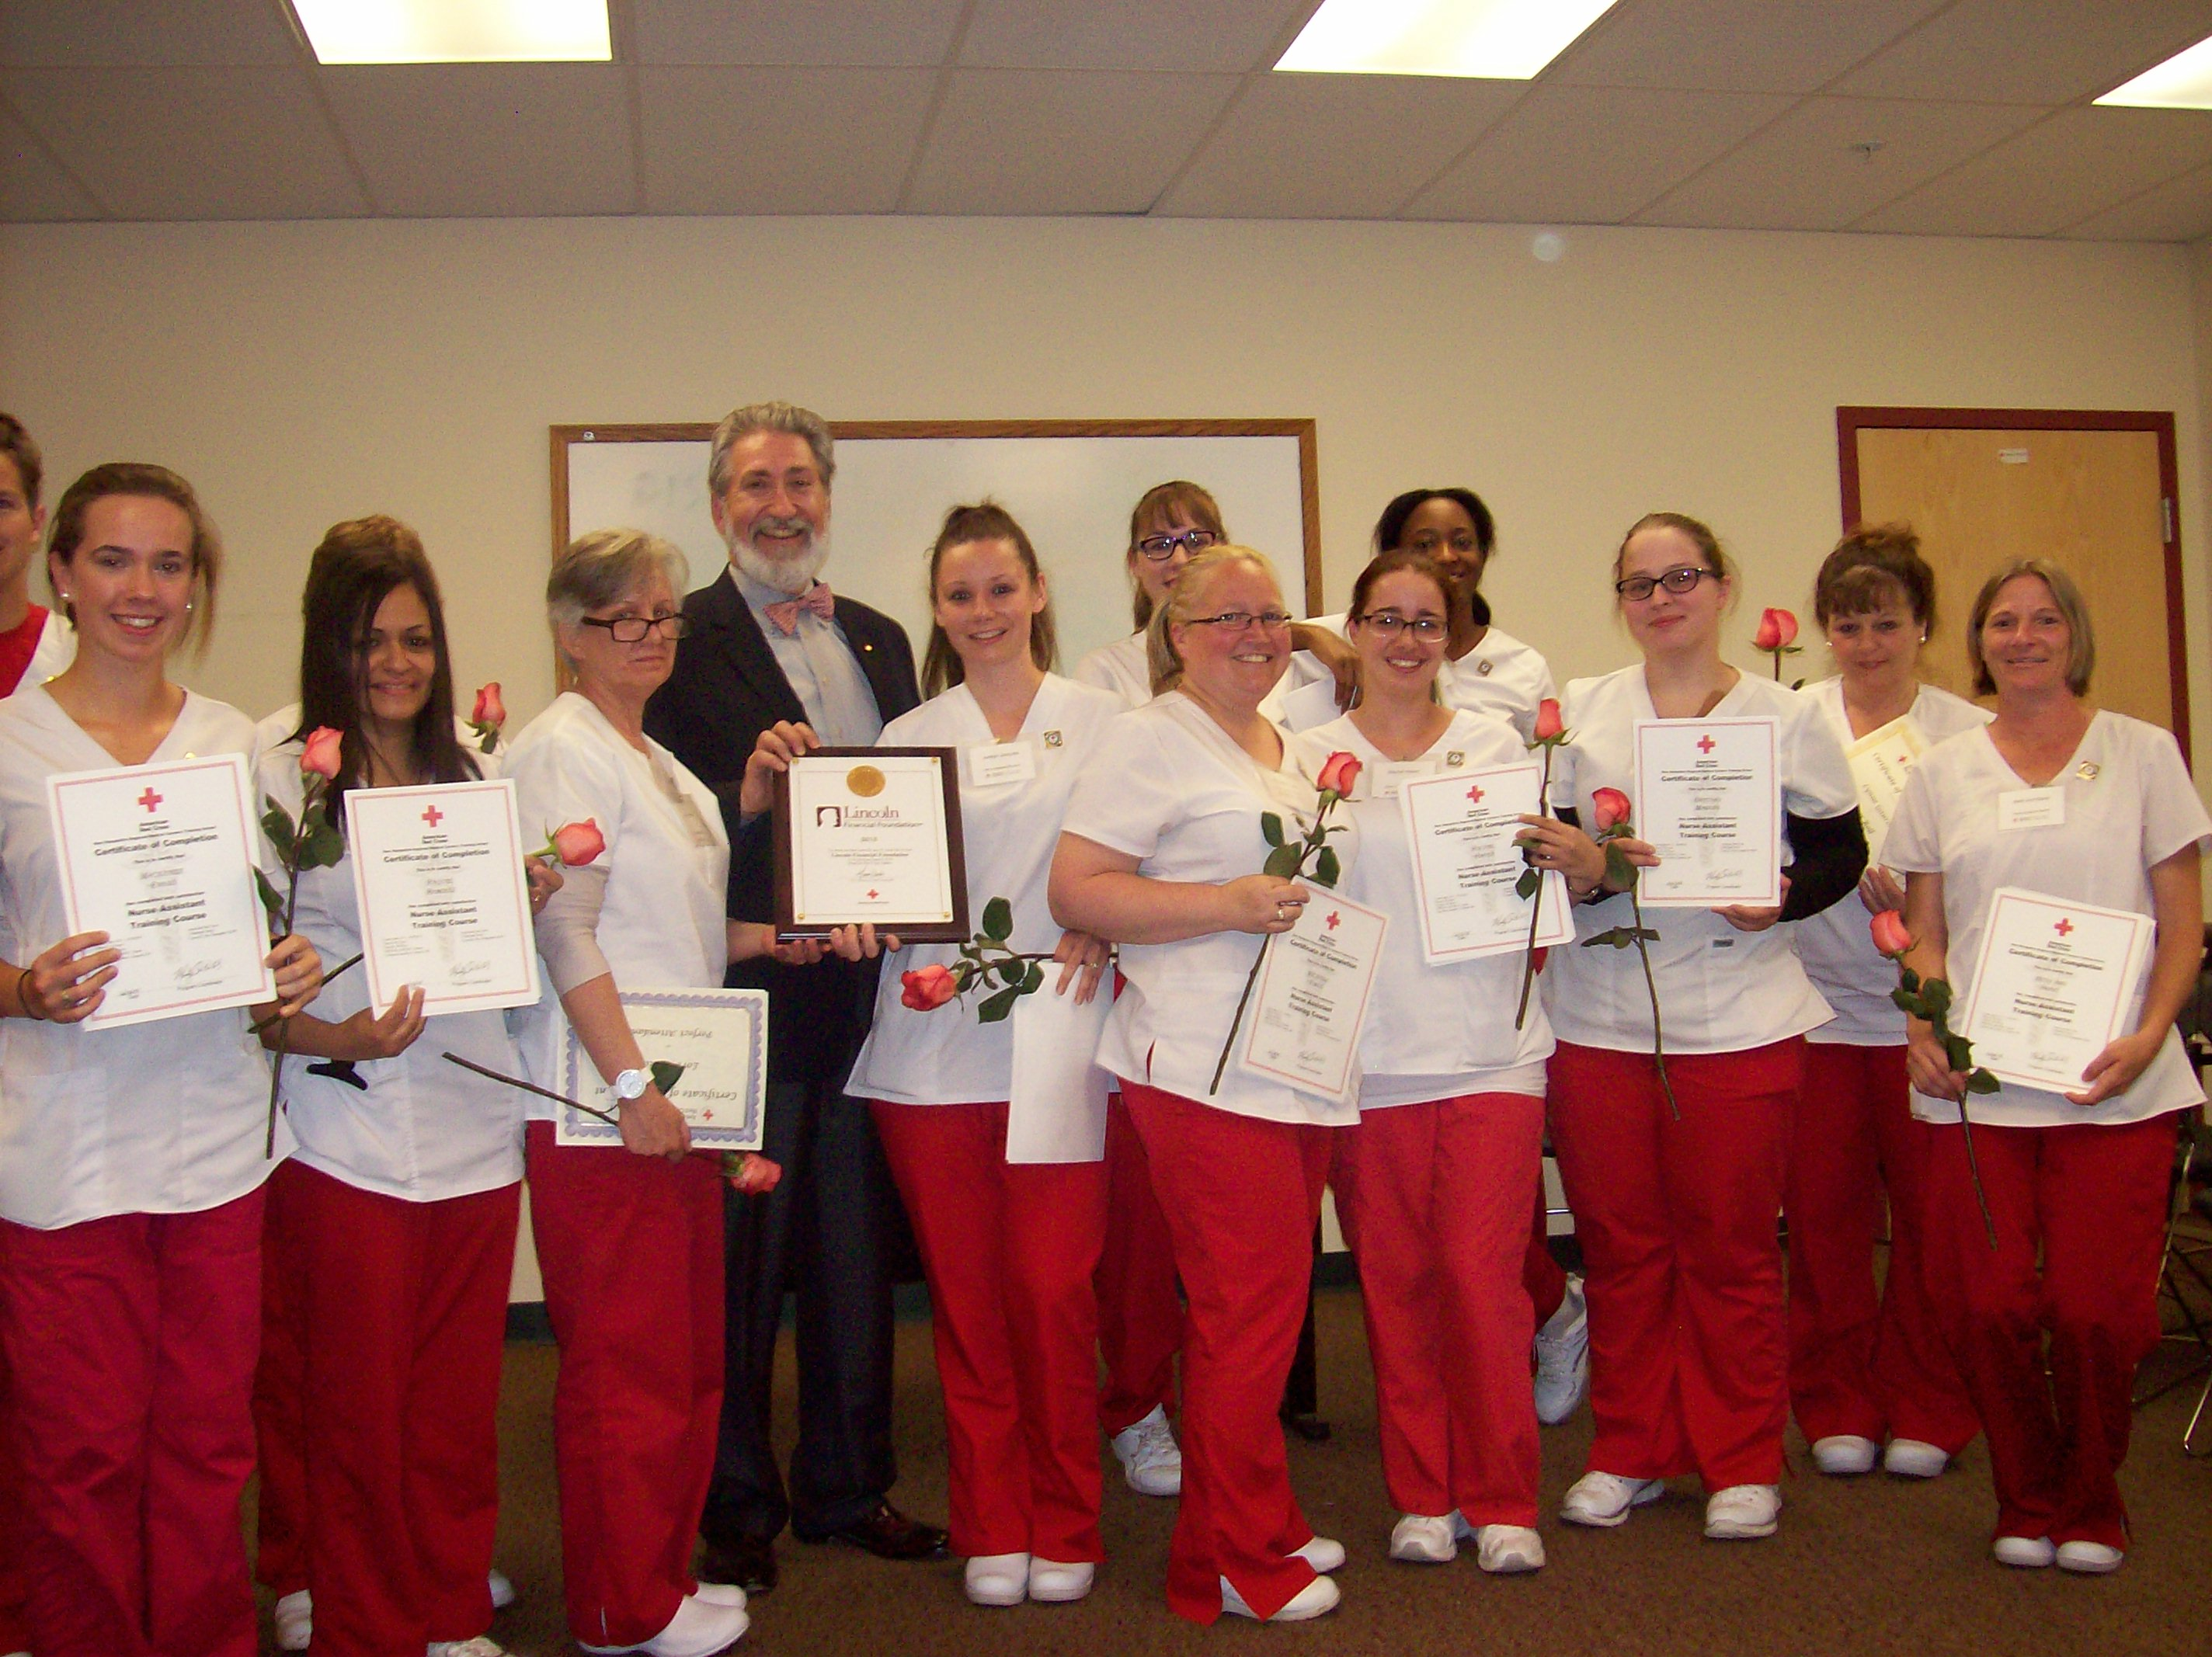 American red cross certifies 2015 class of grant funded nursing american red cross certifies 2015 class of grant funded nursing assistant graduates 1betcityfo Choice Image